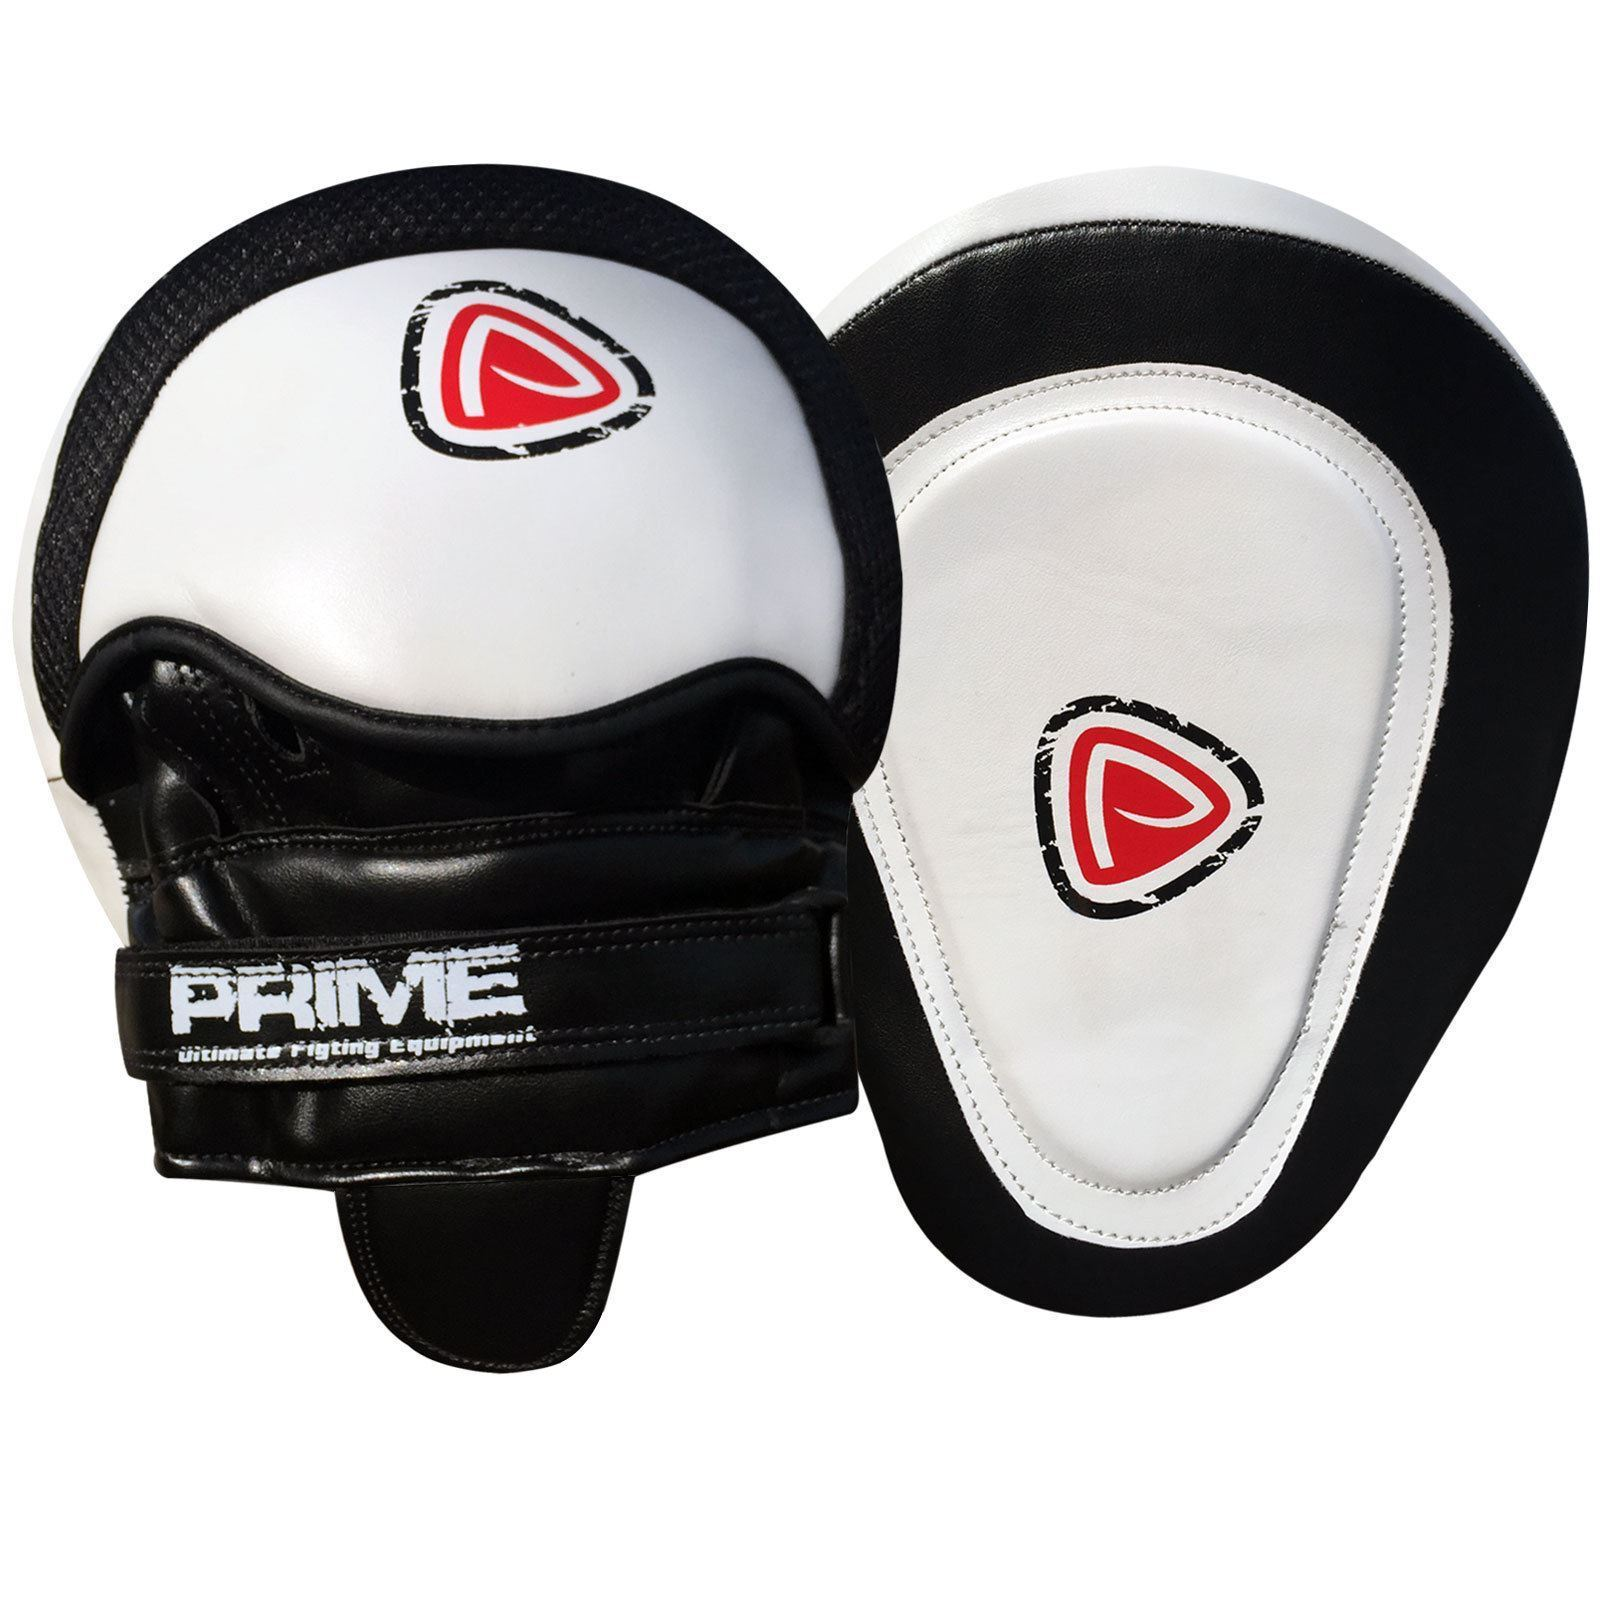 Junior Kids Boxing SET Boxing Uniform Boxing Gloves Focus Years Pads Age 3-14 Years Focus 299dad